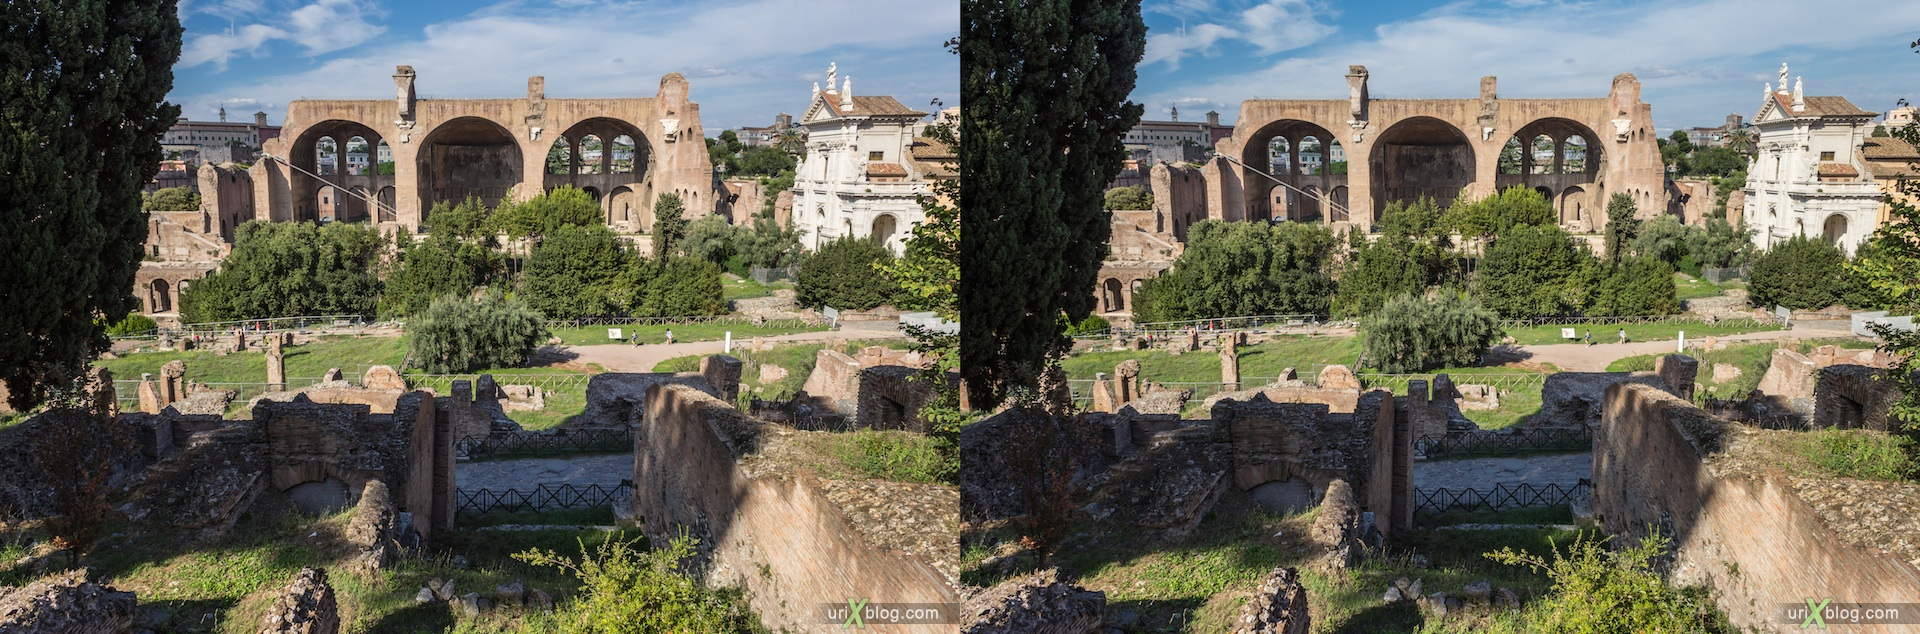 2012, Roman Forum, Palatine Hill, Rome, Italy, ancient rome, city, 3D, stereo pair, cross-eyed, crossview, cross view stereo pair